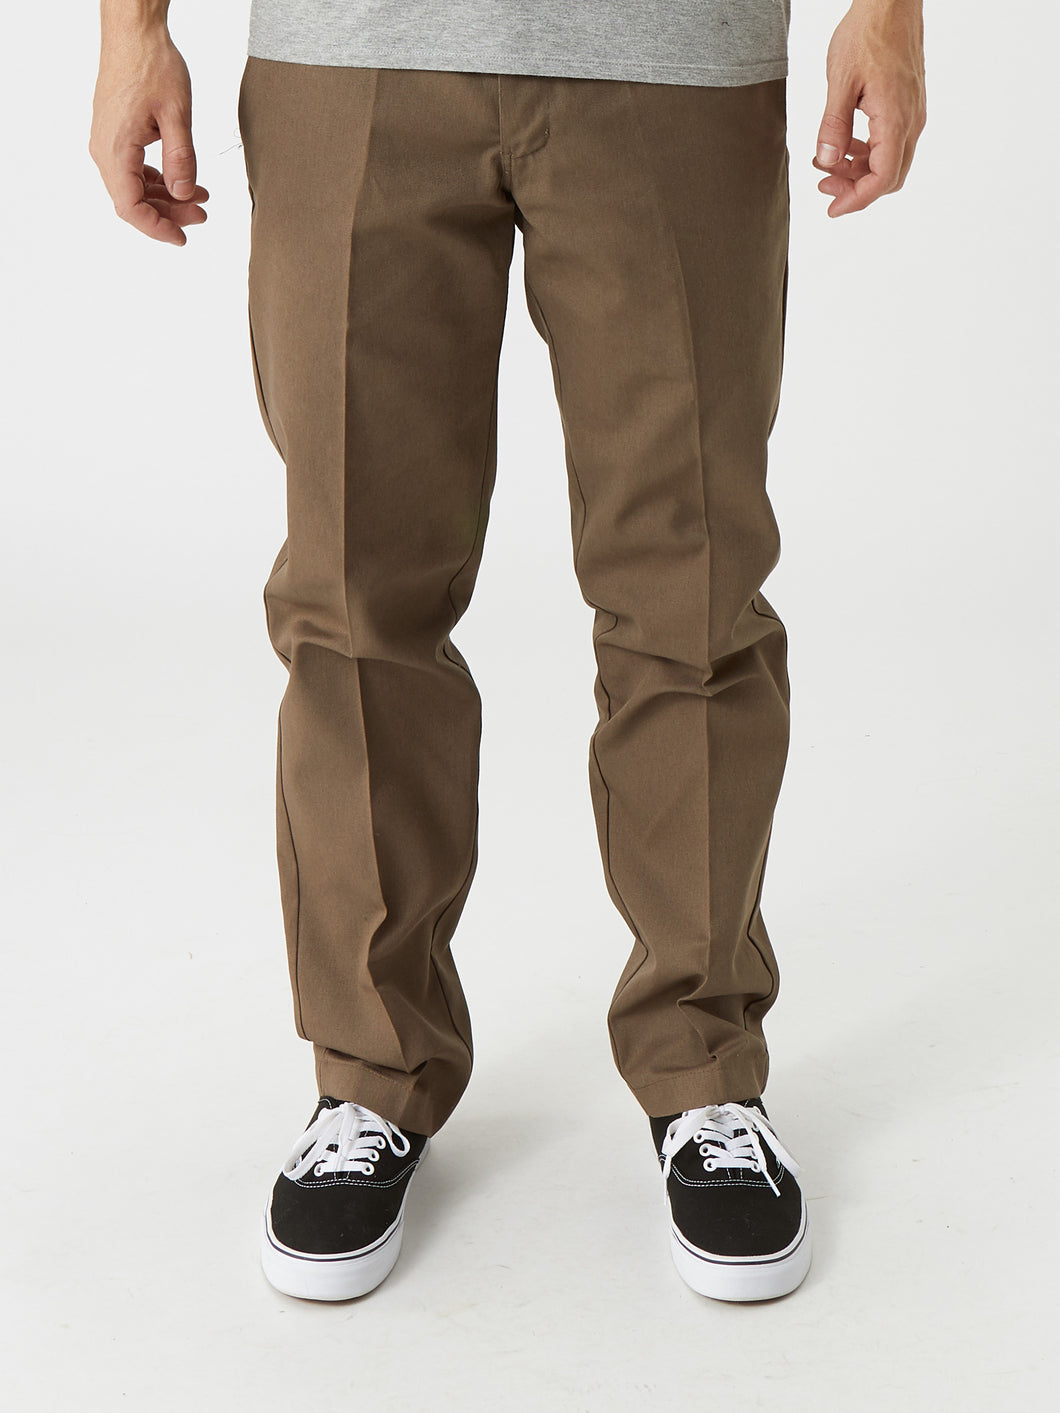 Dickies '67 Slim Fit Stretch Straight Leg Work Pants - Mushroom